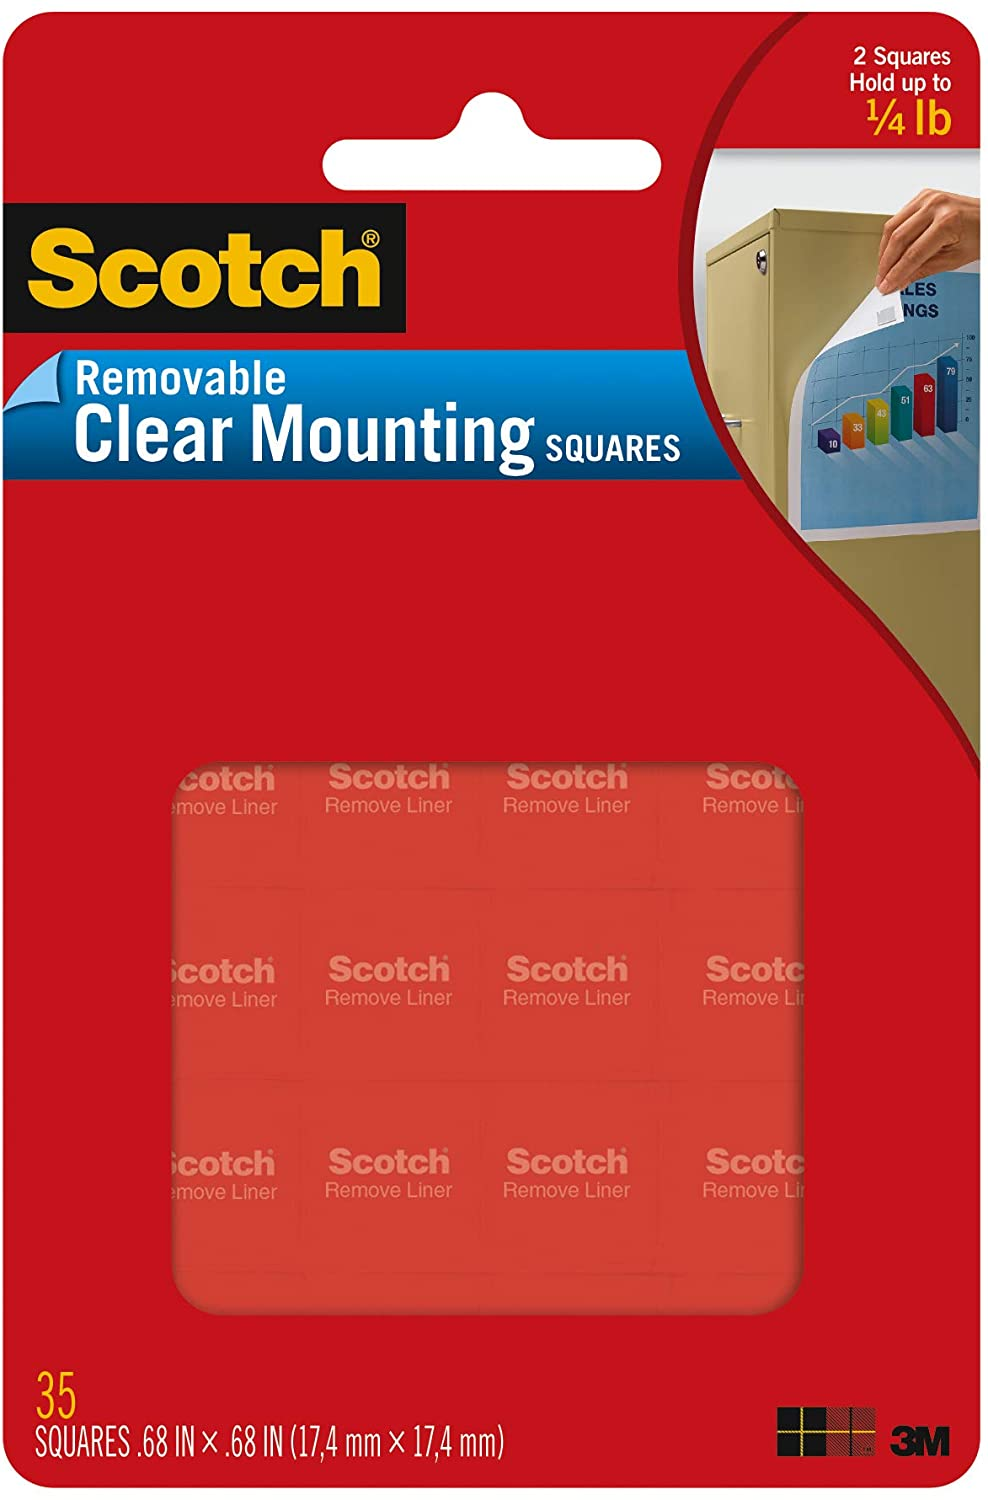 Scotch Removable Mounting Squares, 0.68 in x 0.68 in, Clear, Ideal for Papers, Folders, Cards, and More (859)